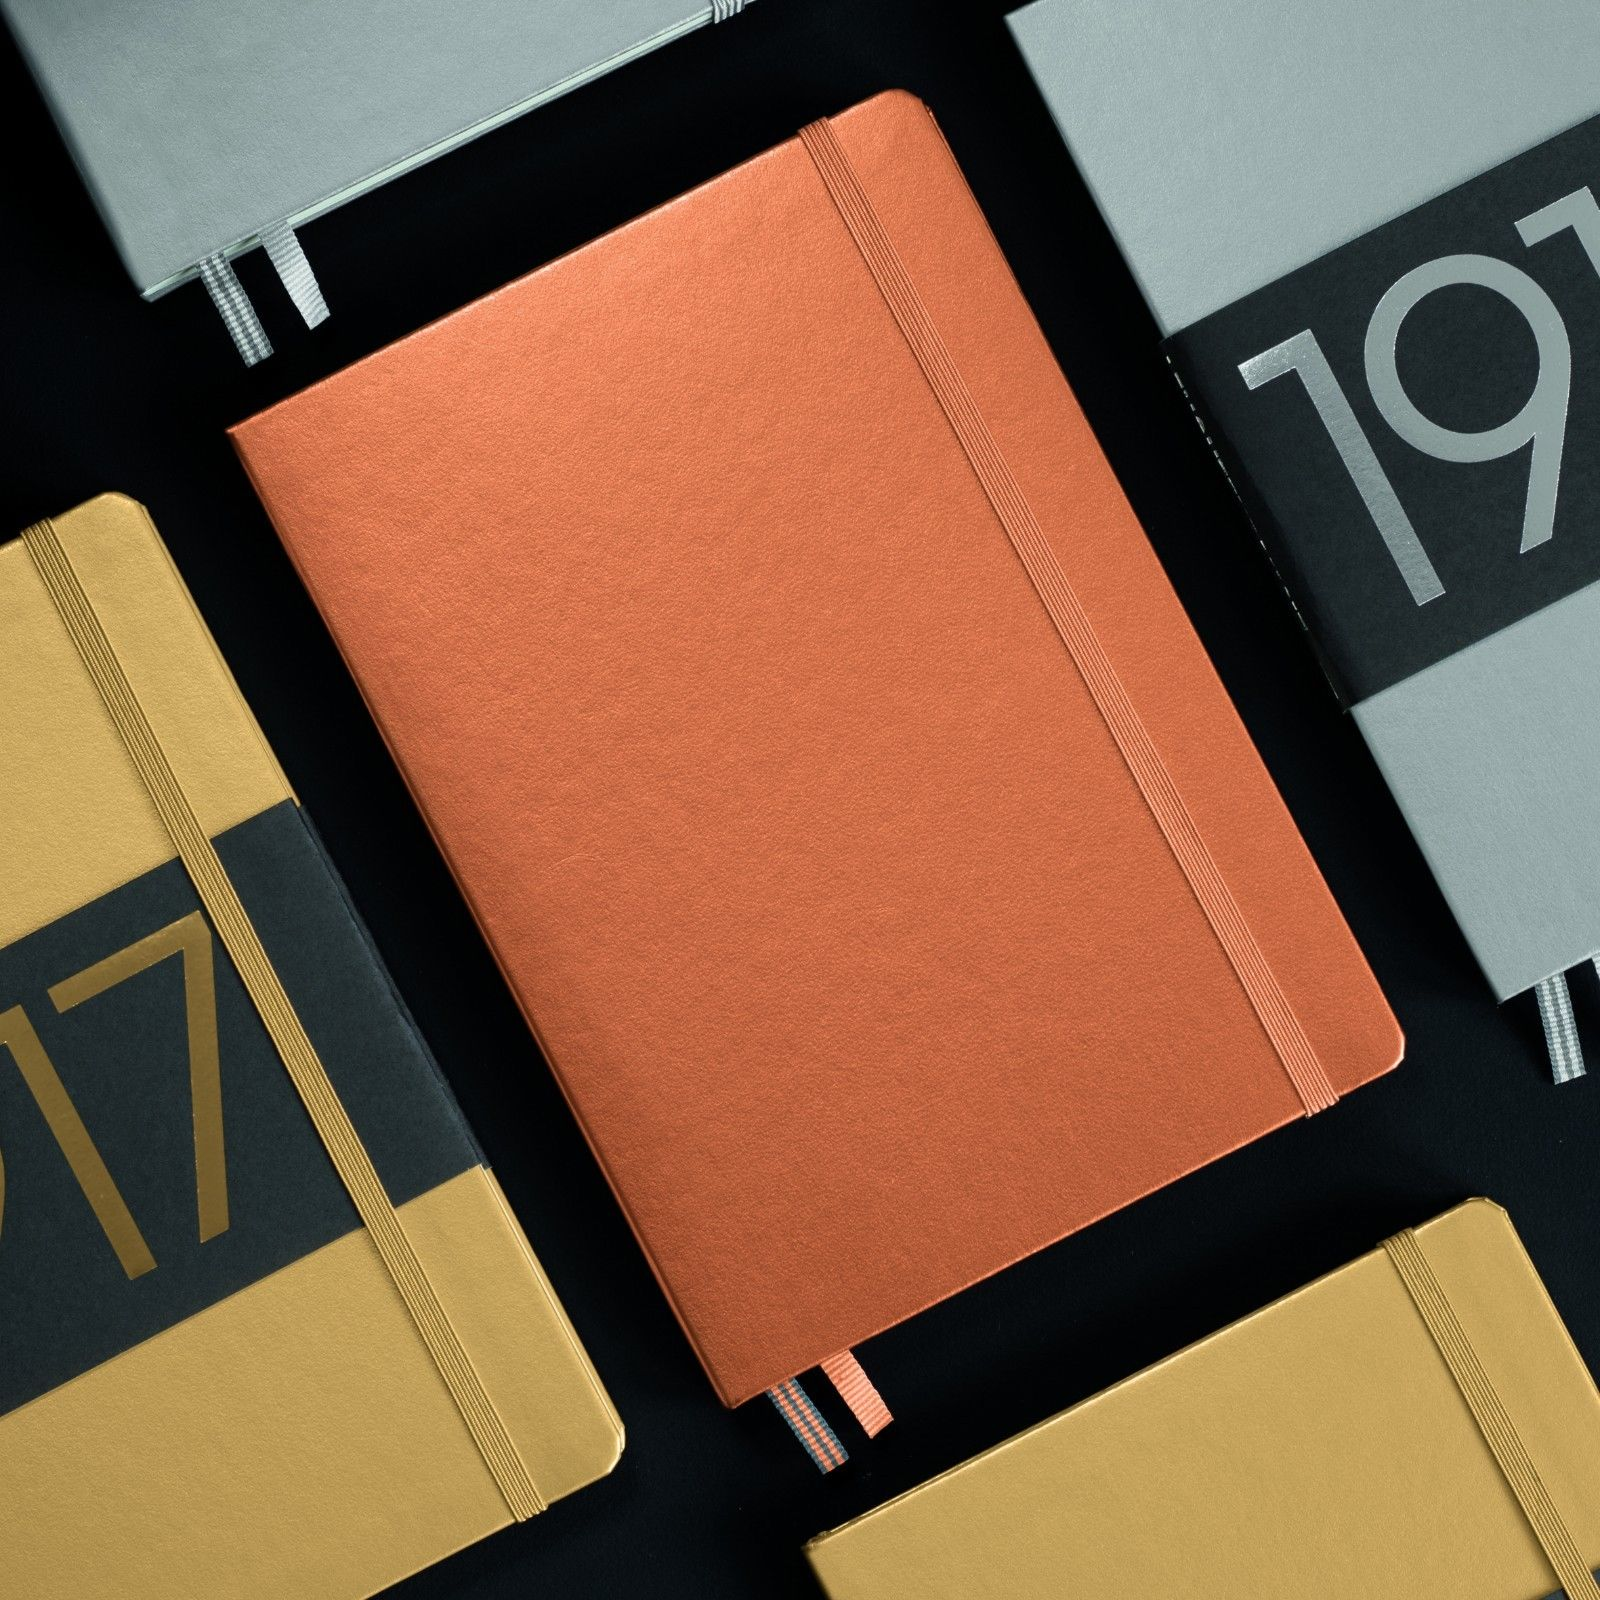 Leuchtturm1917-Notebook-A5-100-Years-Metallic-Special-Edition-Gold-Silver-Copper-152483875649-2